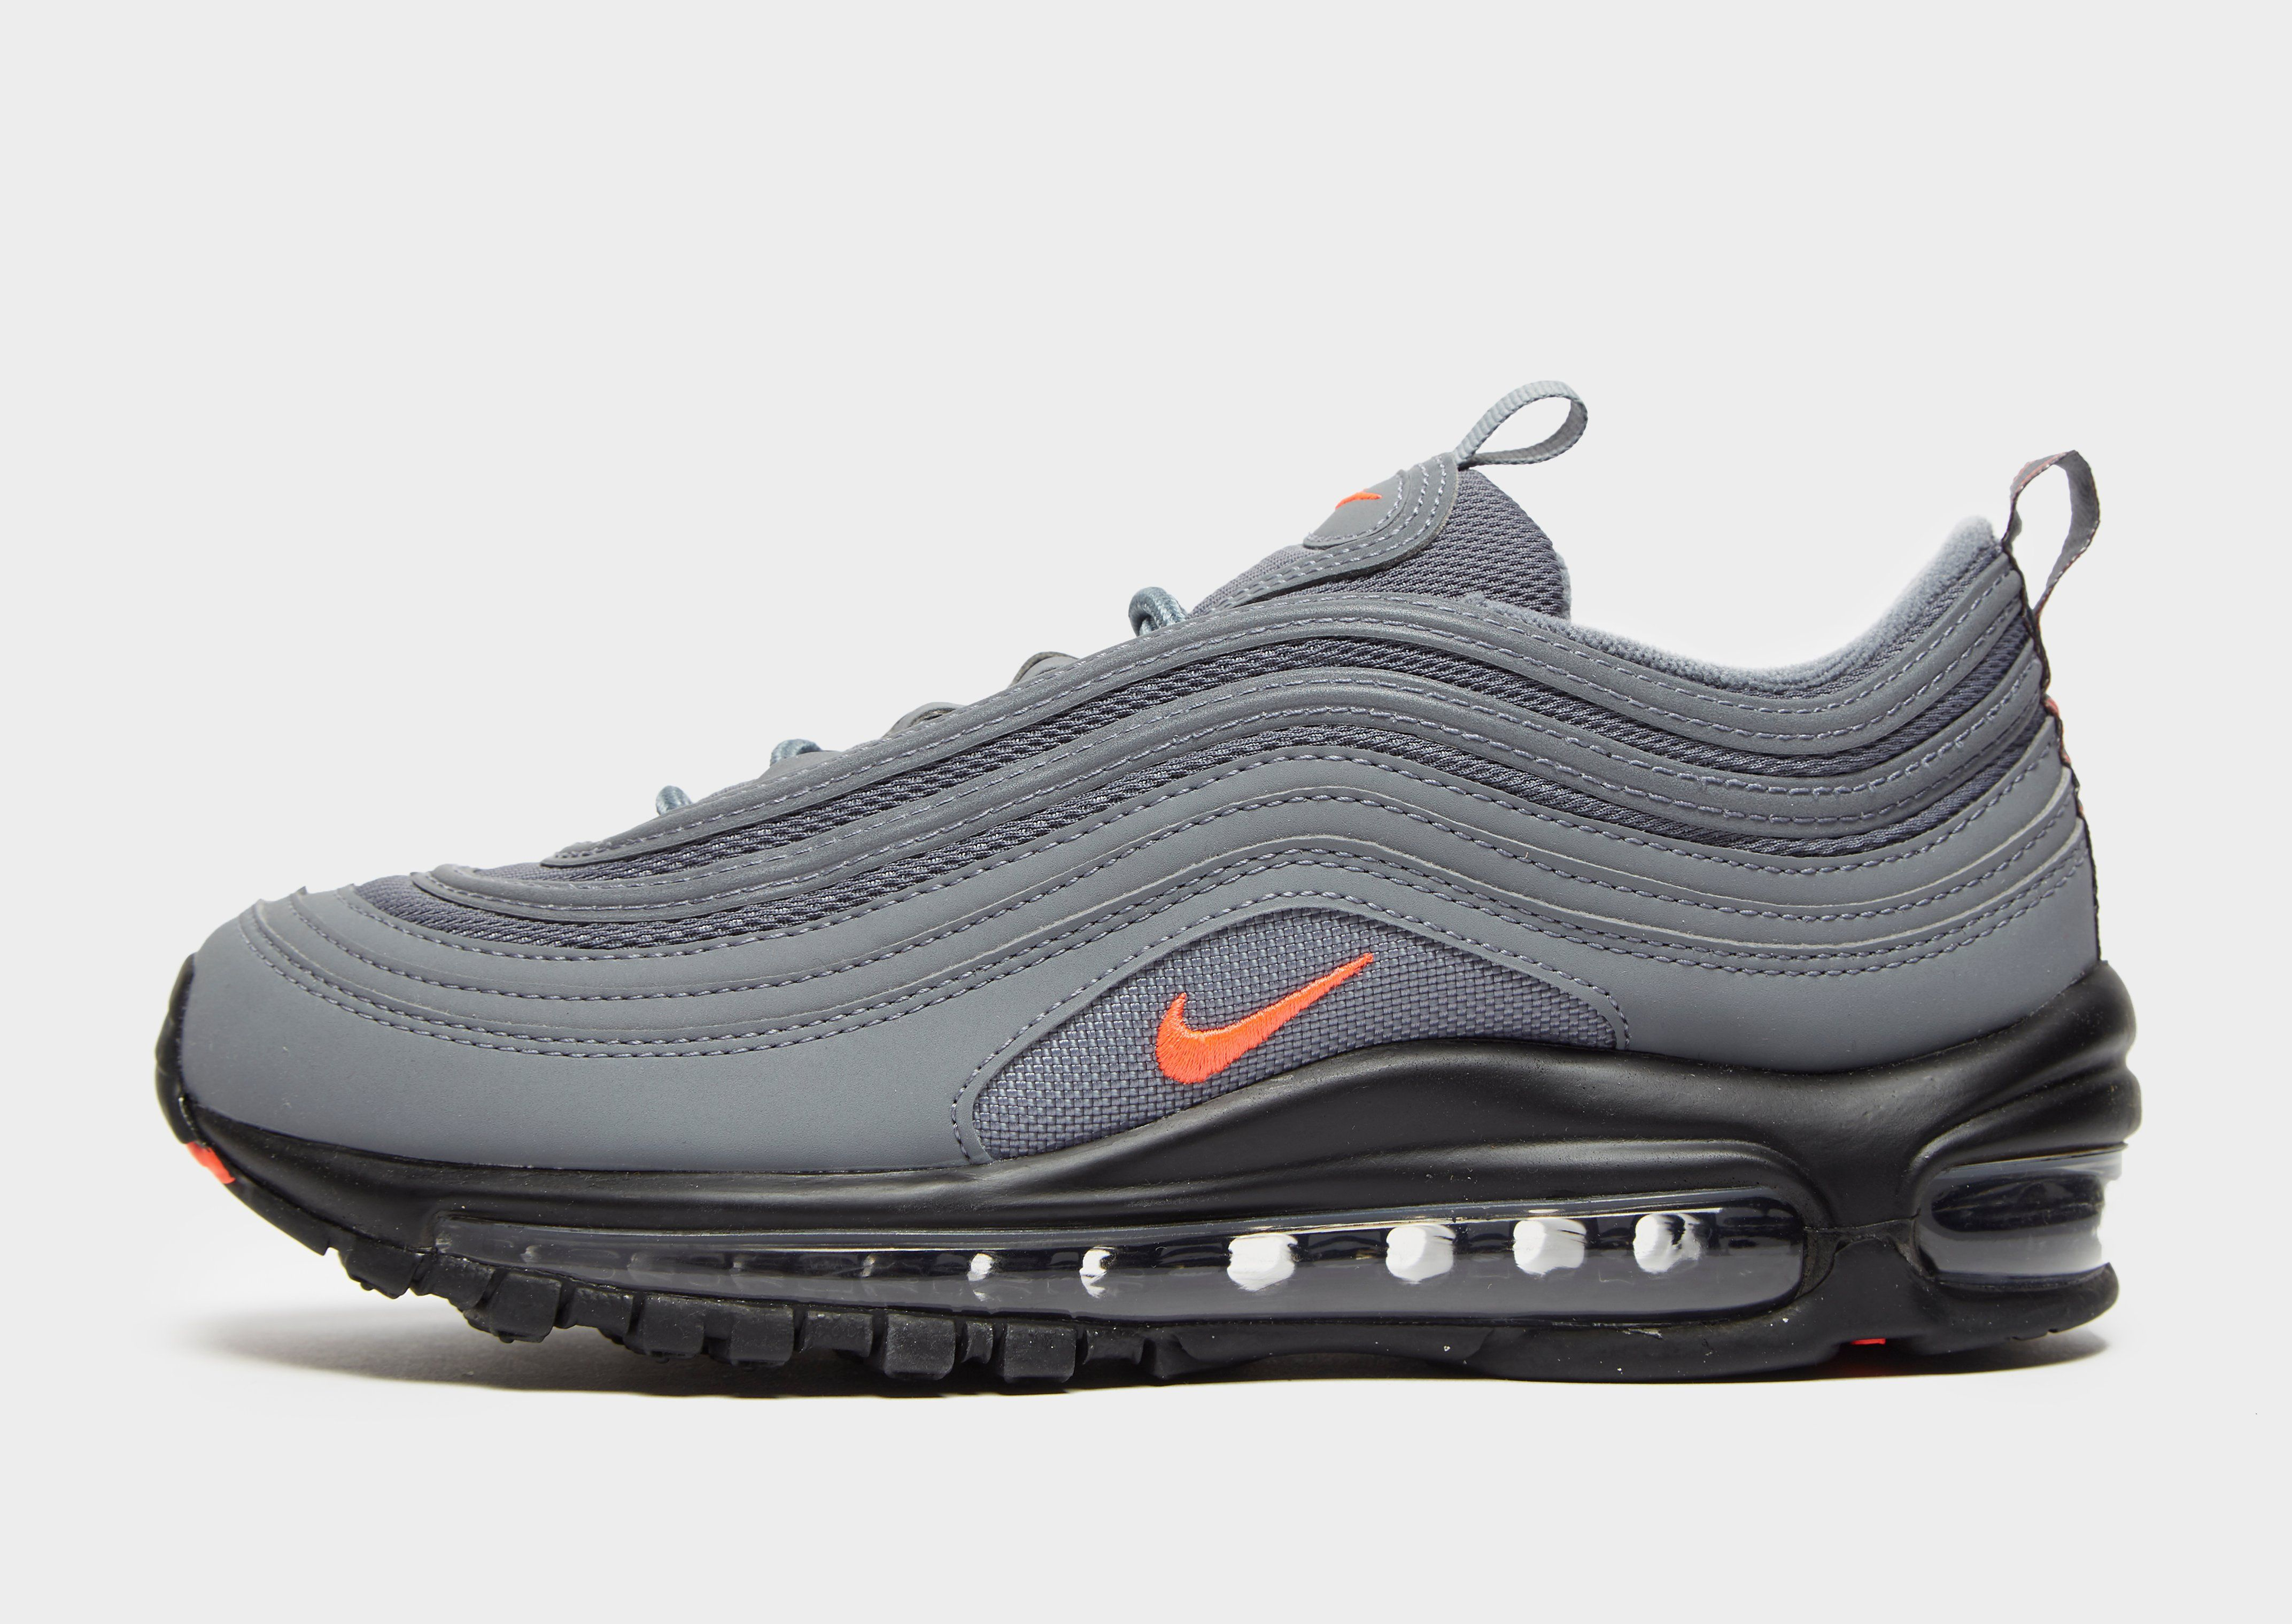 Nike Air Max 97 Deadly Pack mvp stafford.co.uk